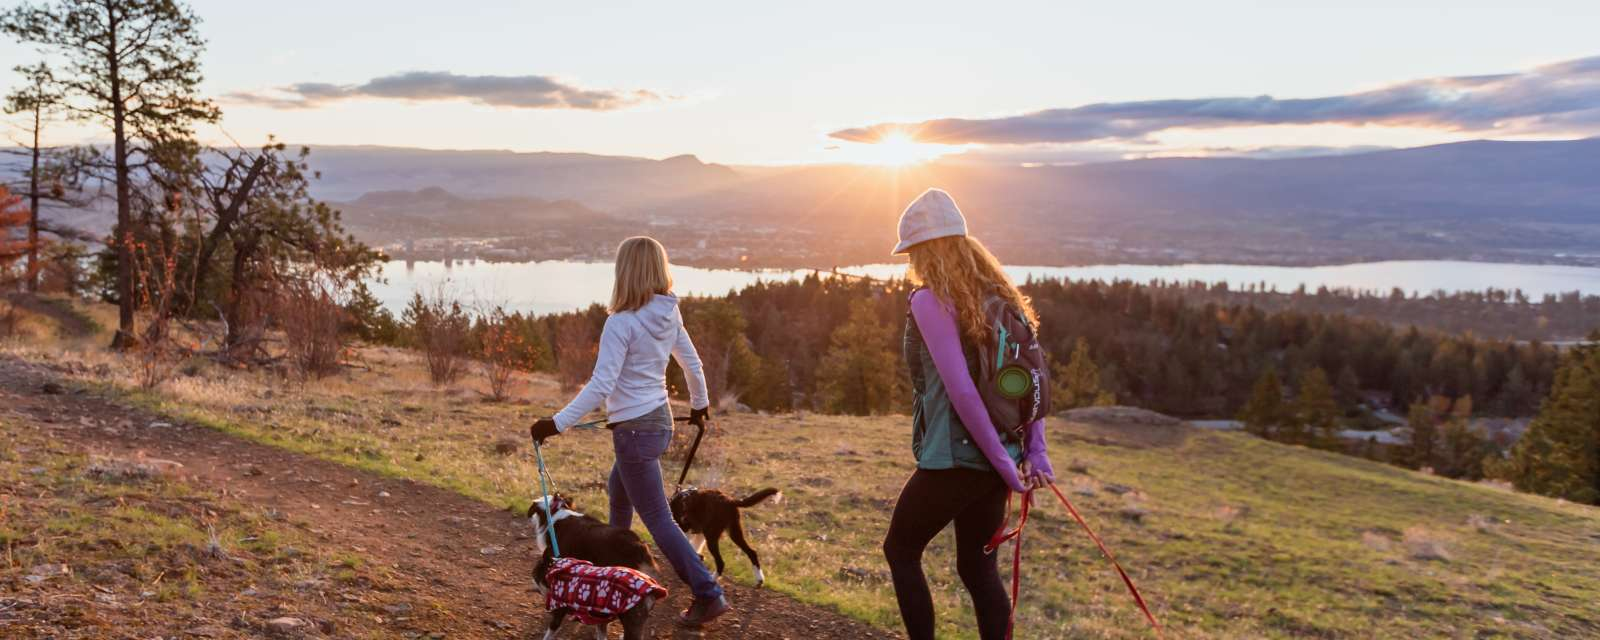 Dog-Friendly Activities in Kelowna | Parks & Beaches